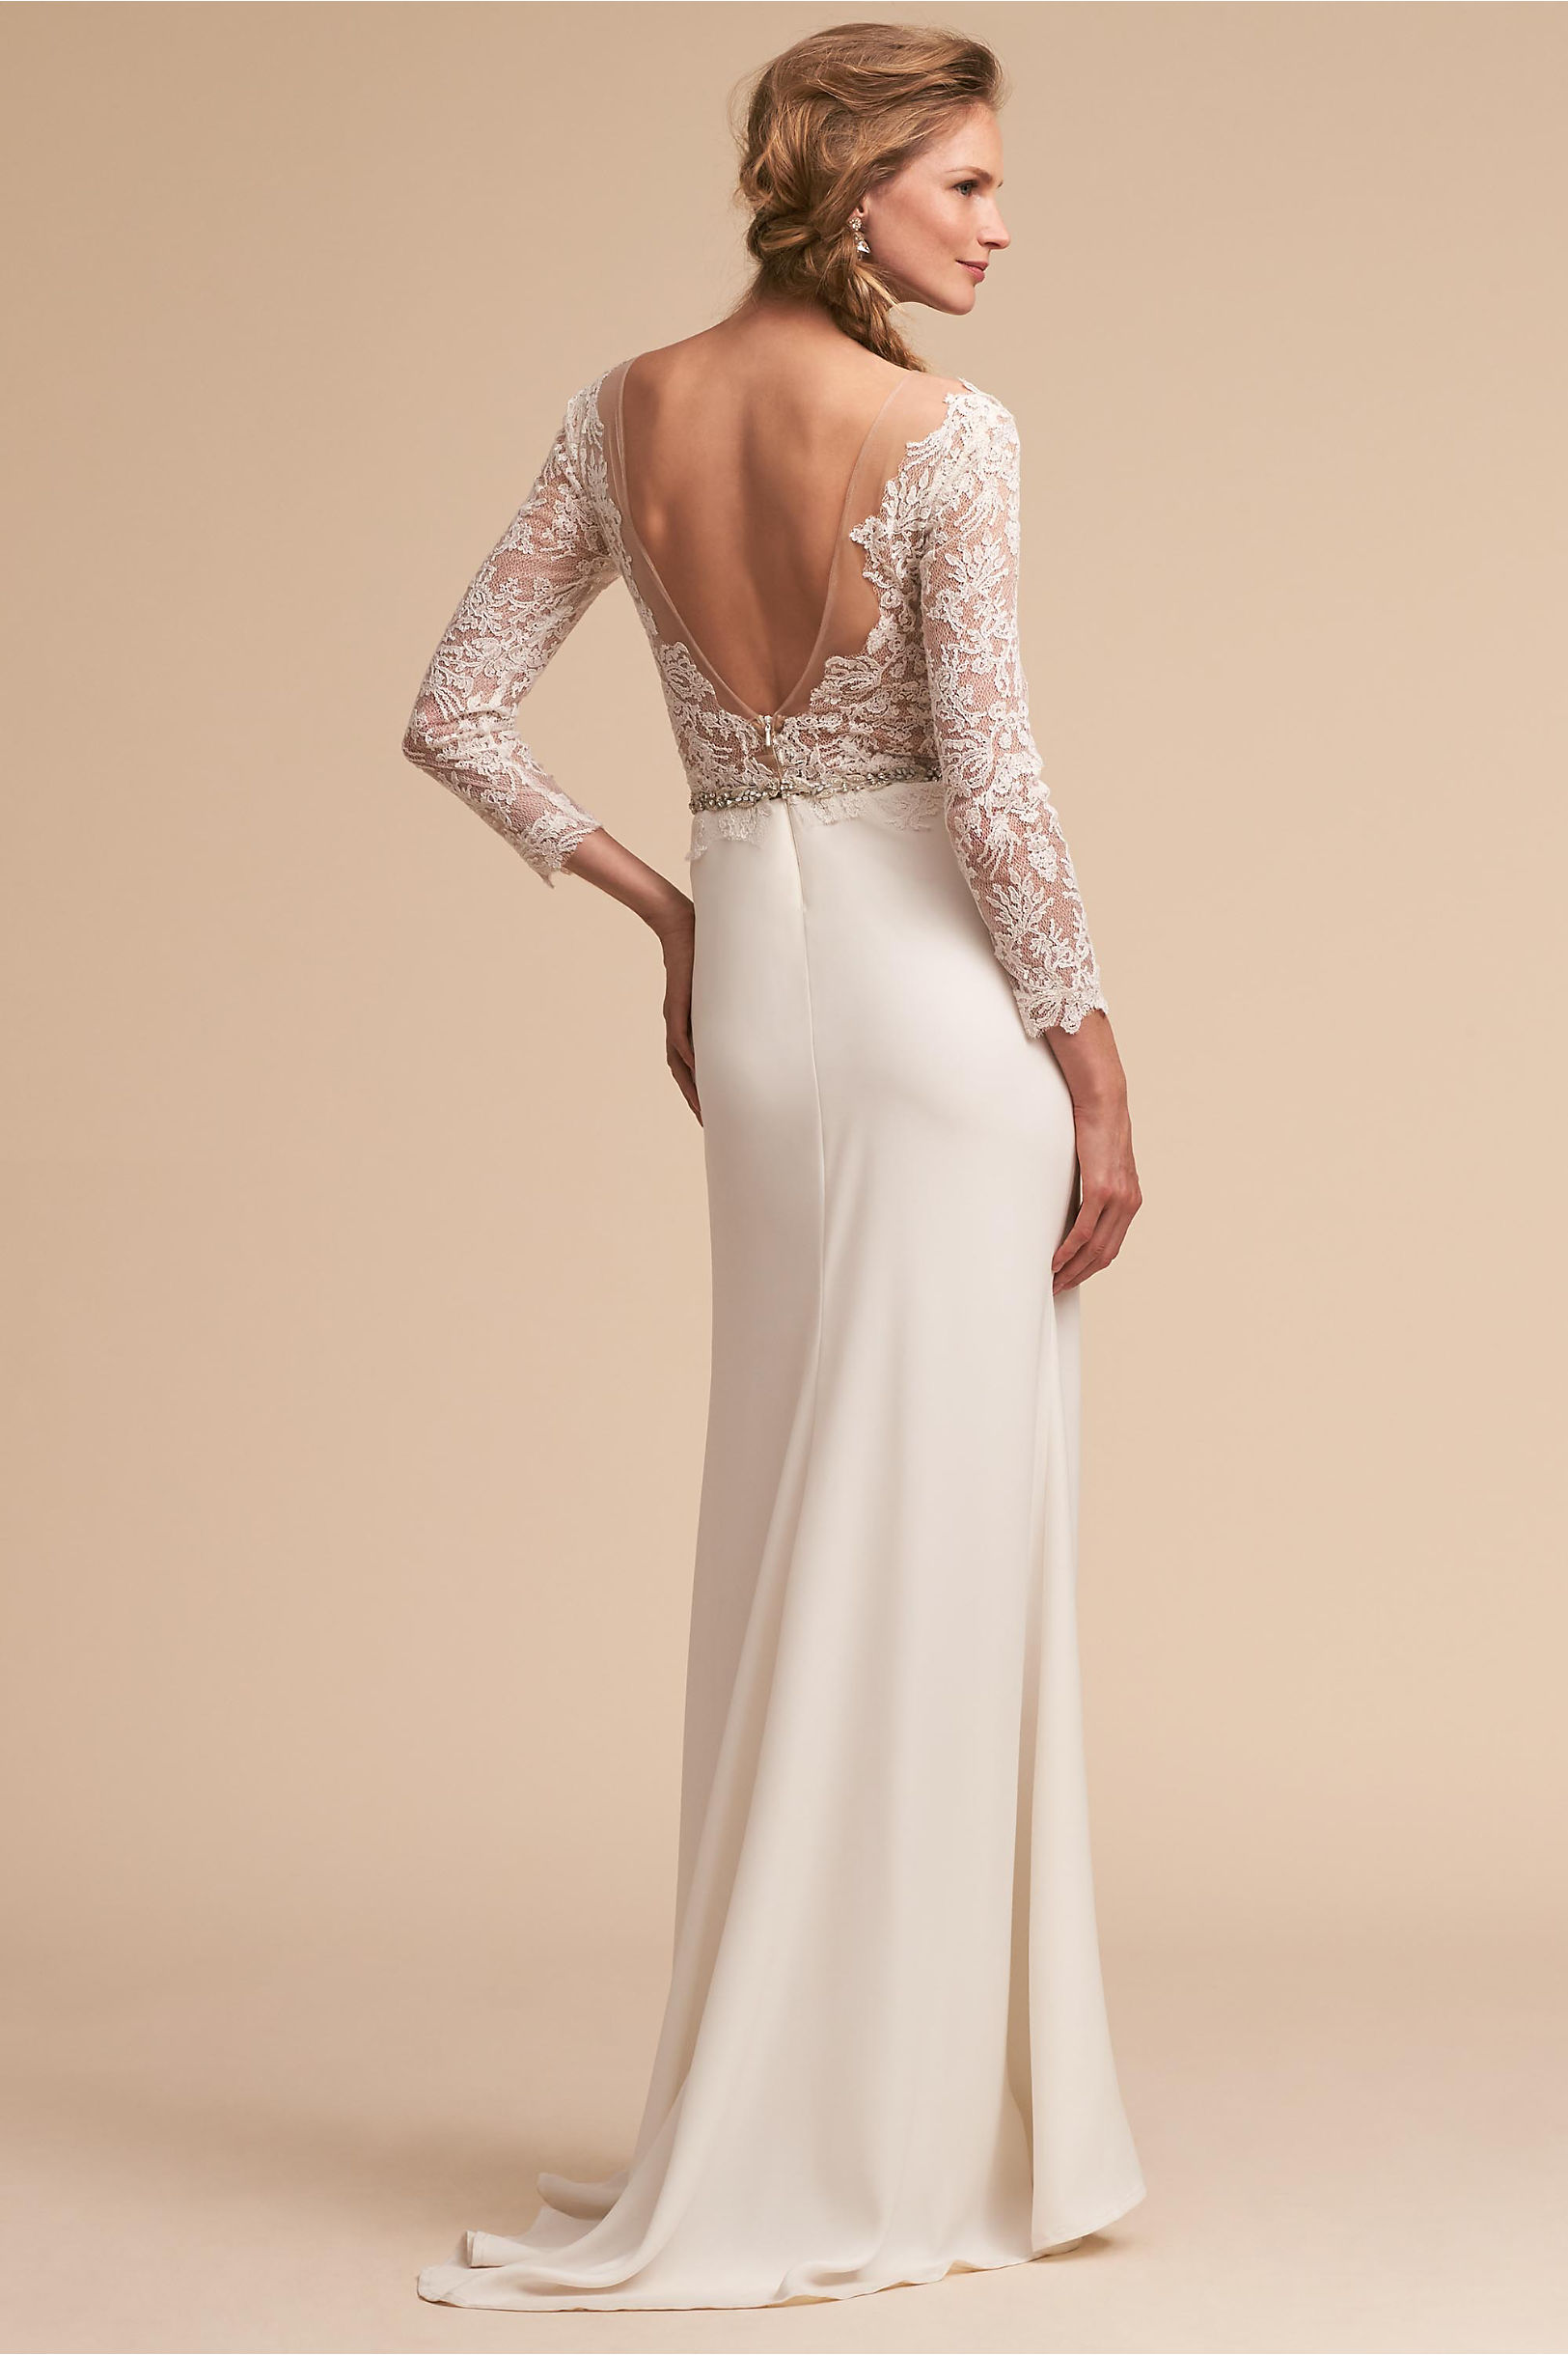 Back of Langston wedding dress flower lace bodice and sleek skirt long sleeves tadashi shoji bhldn spring 2018